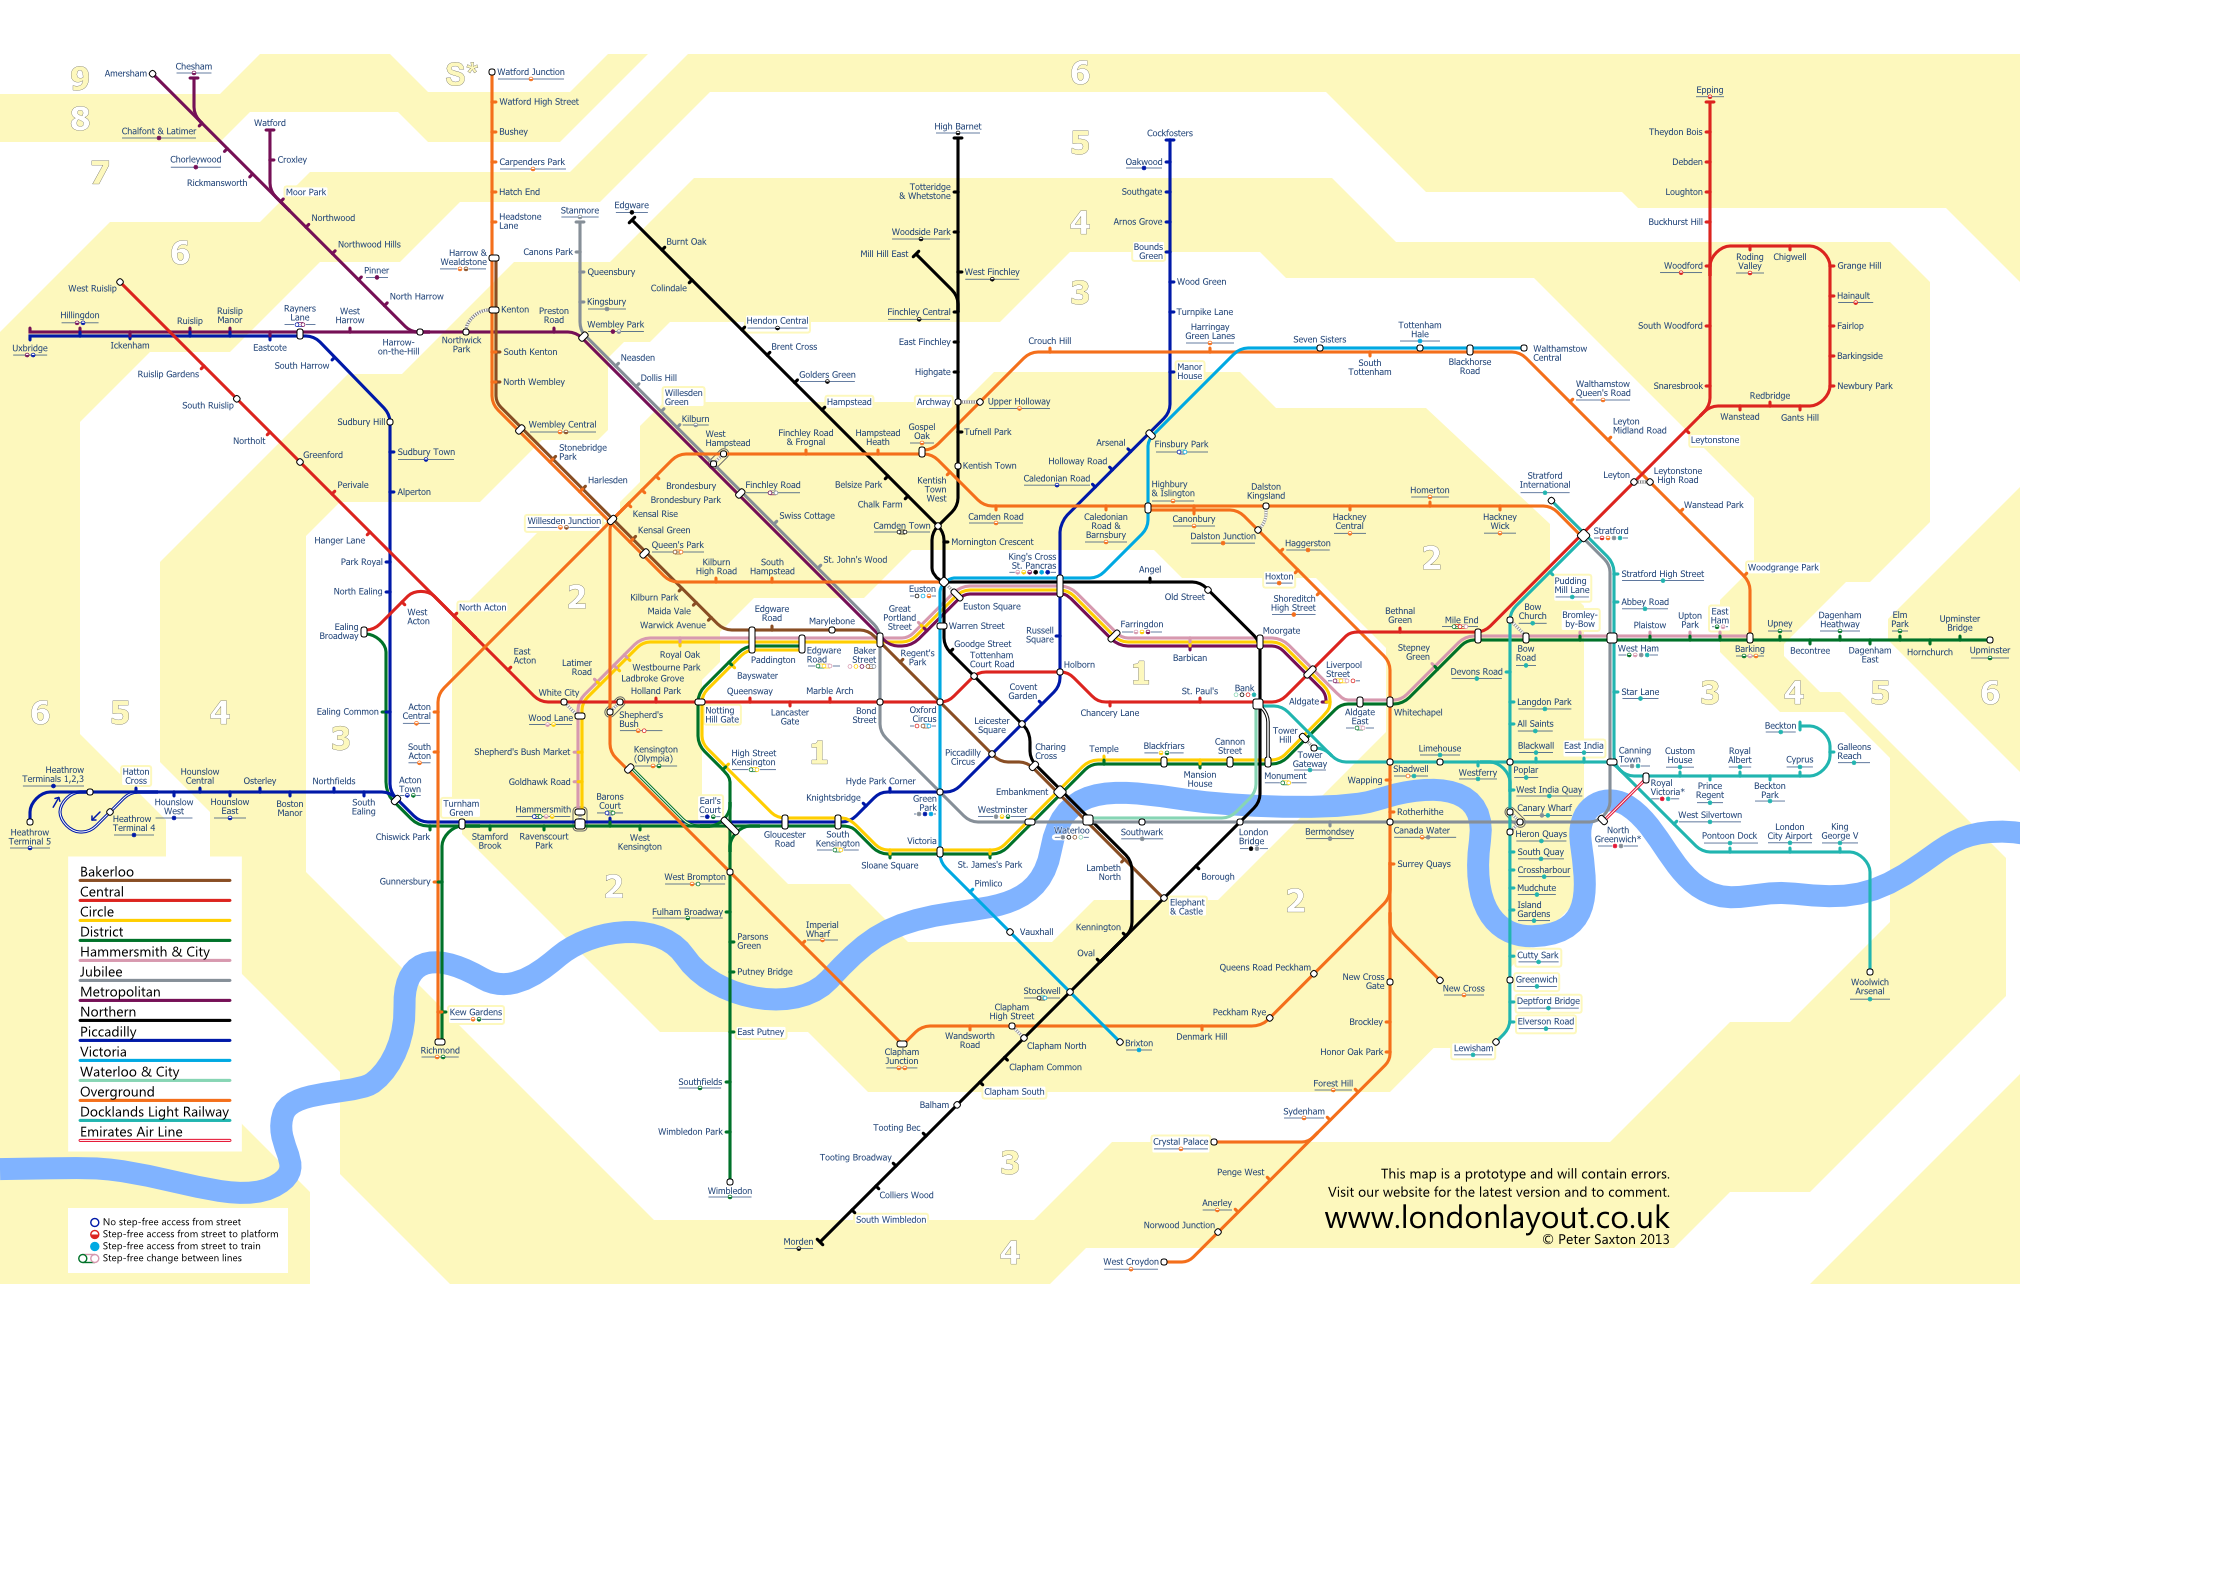 Underground map showing travel zones